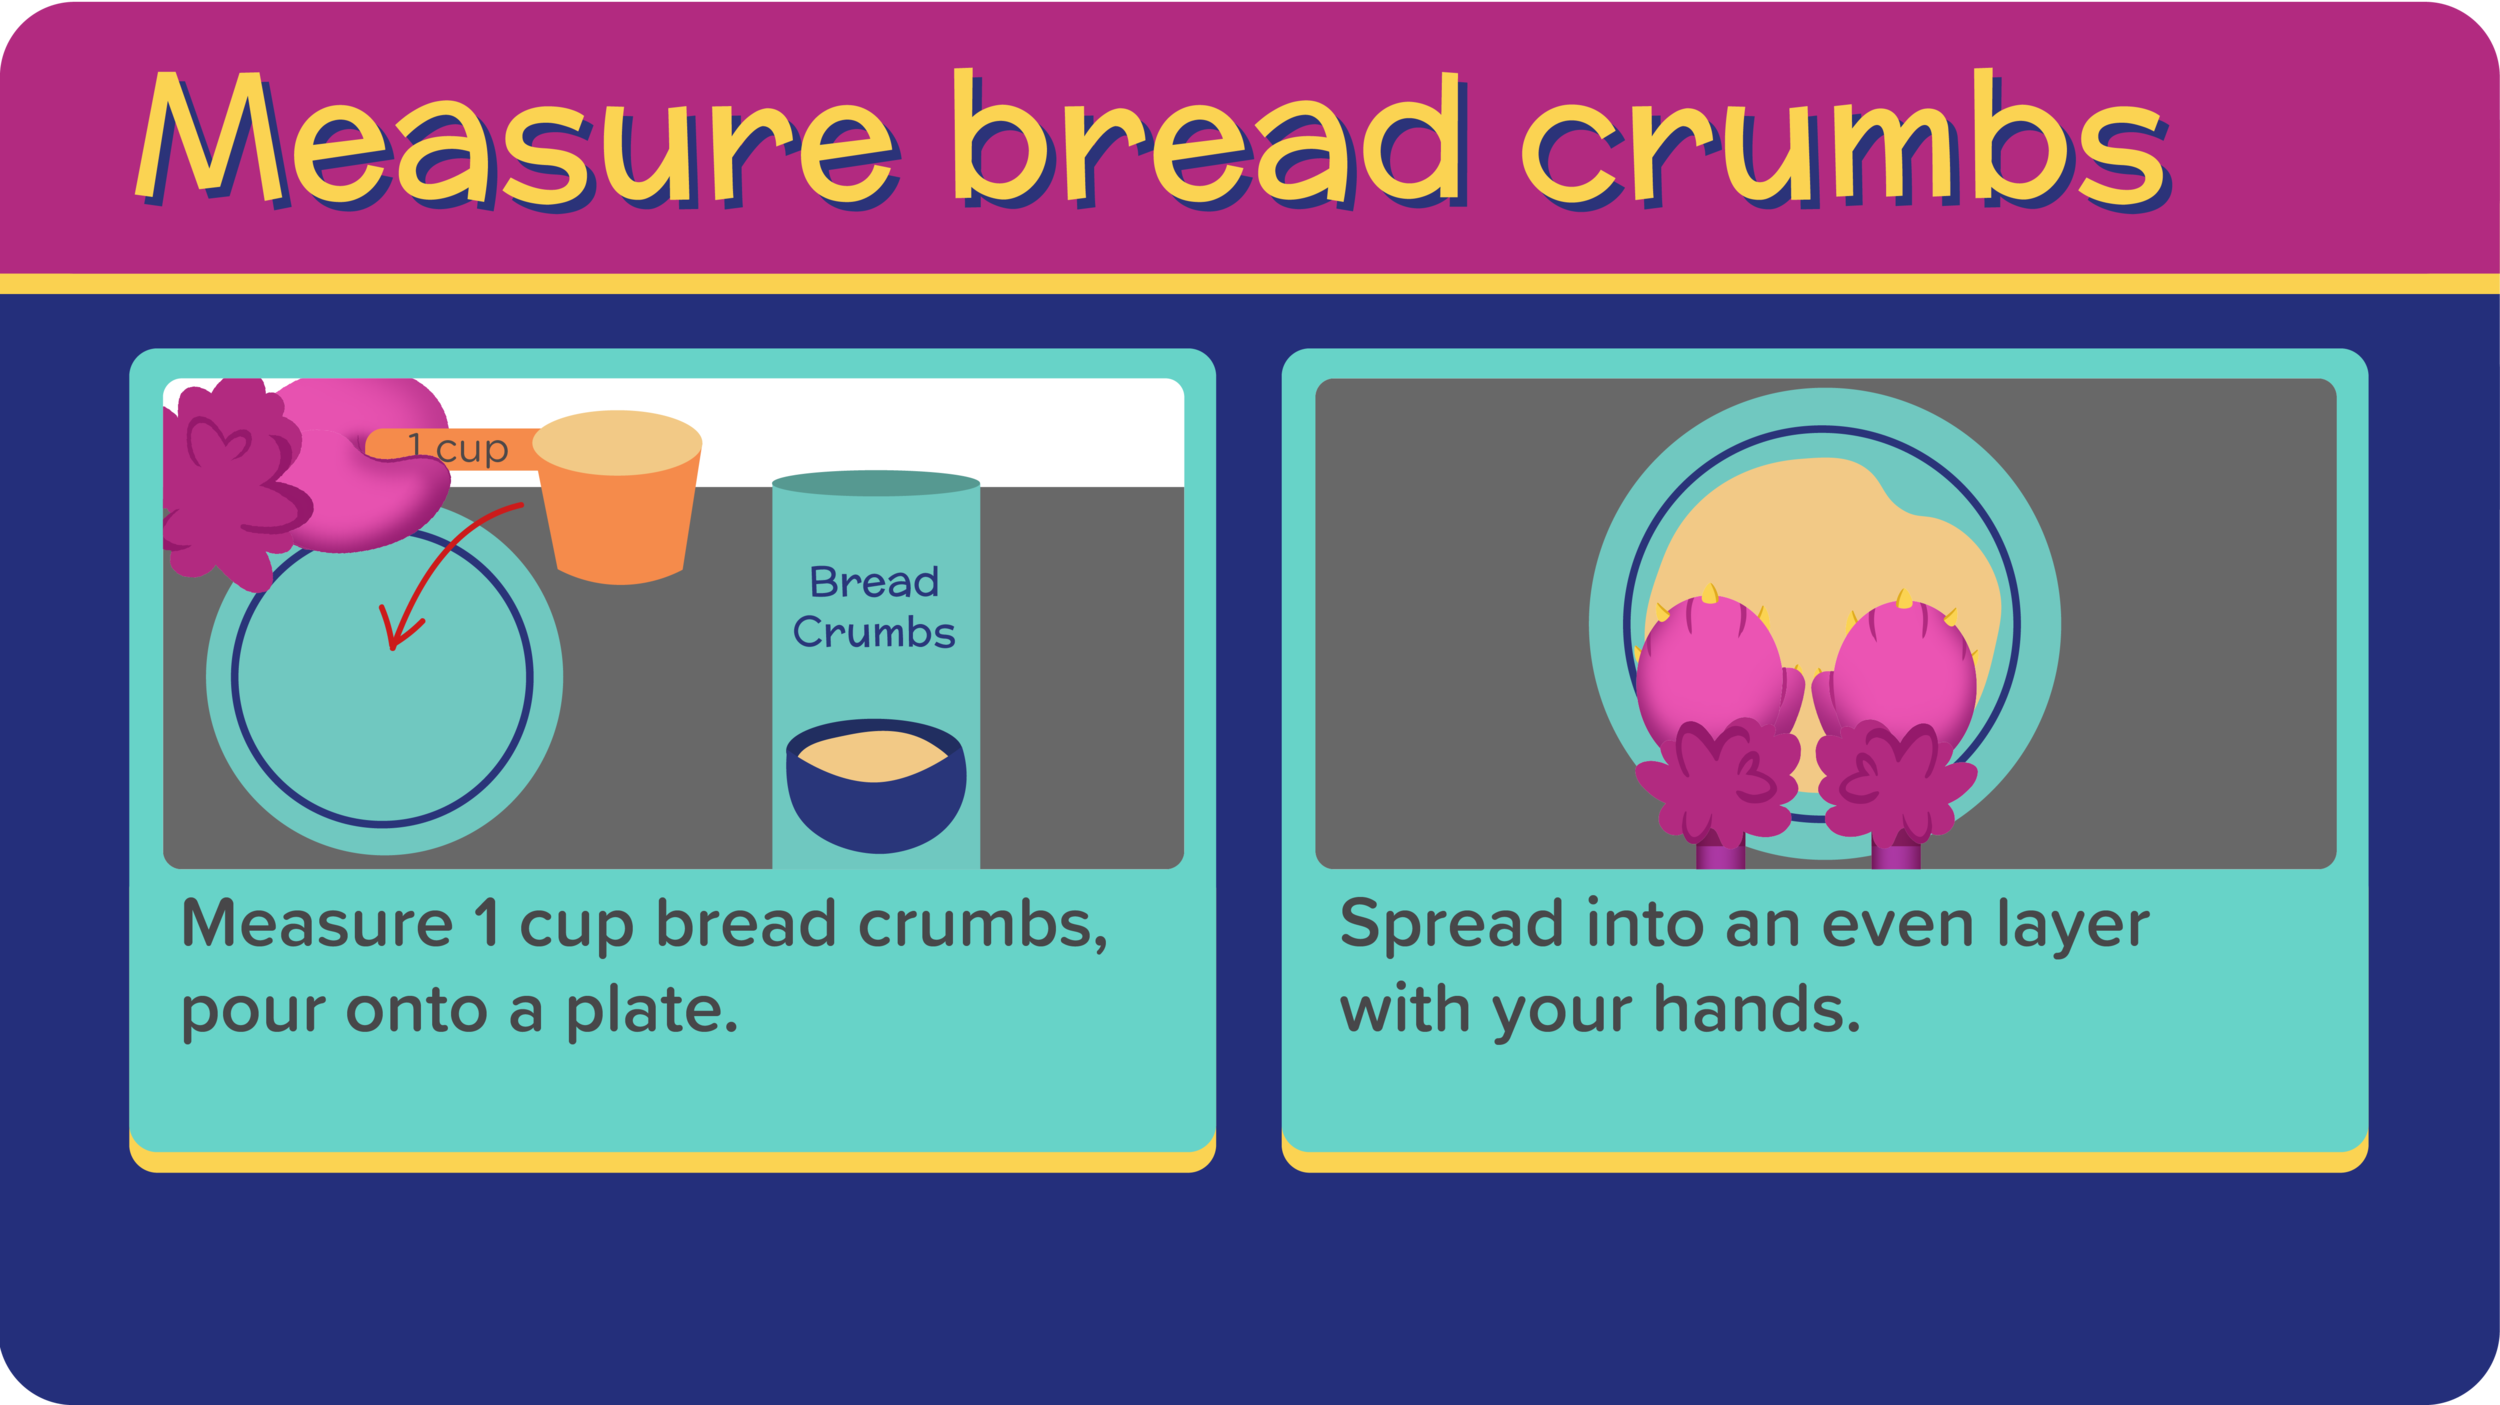 25_ChickenFingersButternutBrussels_bread crumbs-01.png